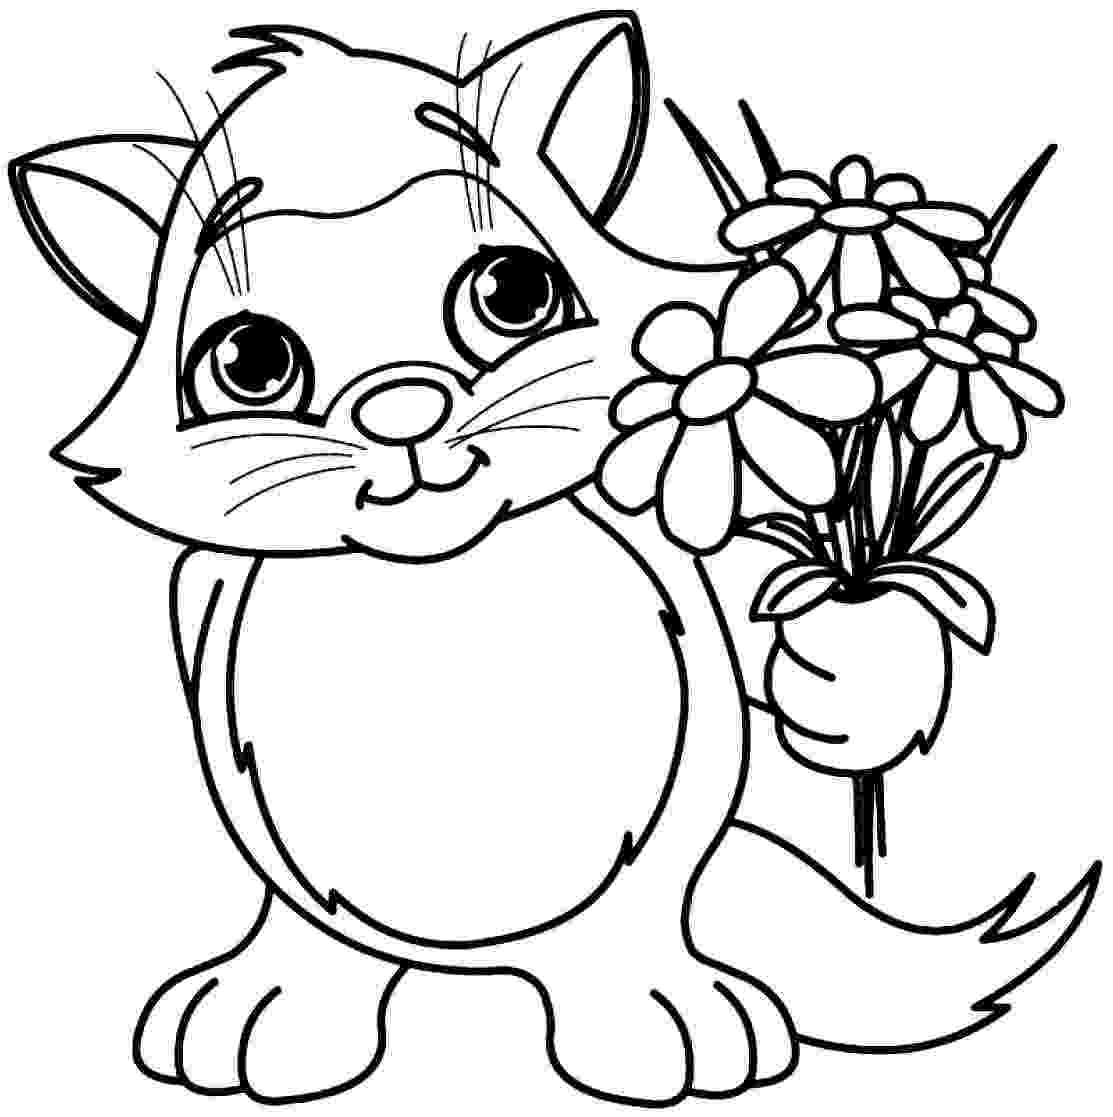 free printable coloring pages of flowers redirecting to httpwwwsheknowscomparentingslideshow pages free of printable flowers coloring